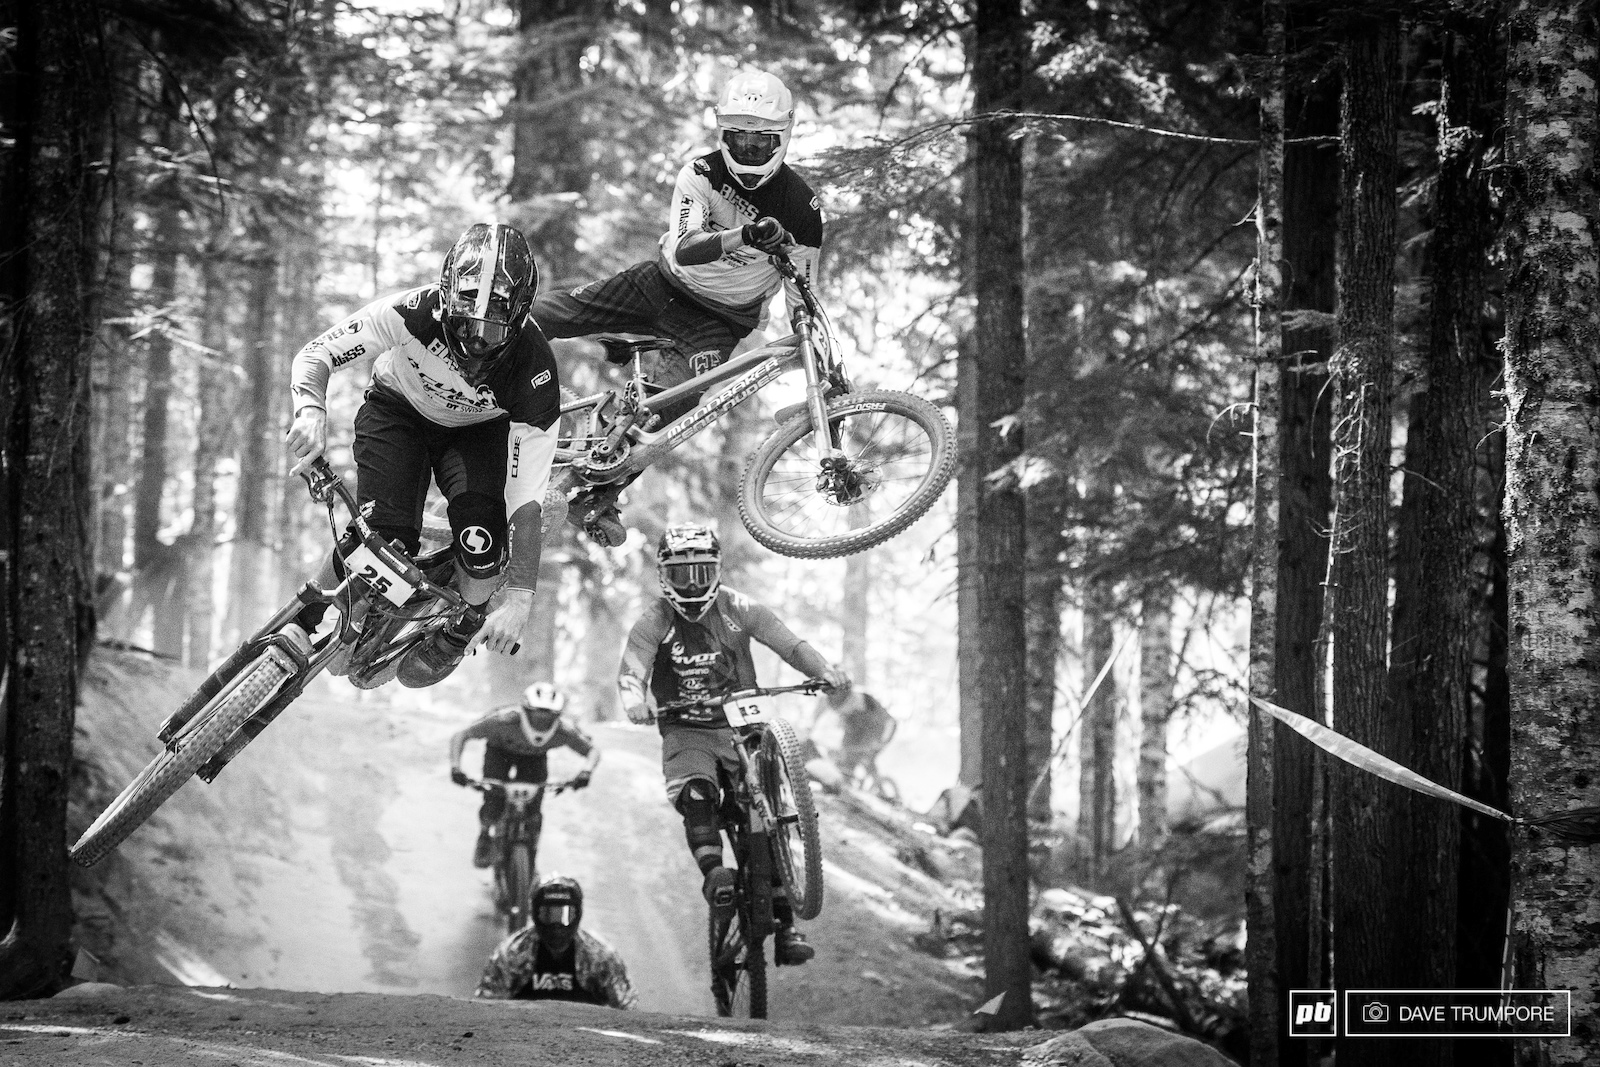 There used t be all kinds of party trains and antics during the Air DH but as Crankworx has focused moe on live broadcasts the past few years we are seeing less and less.